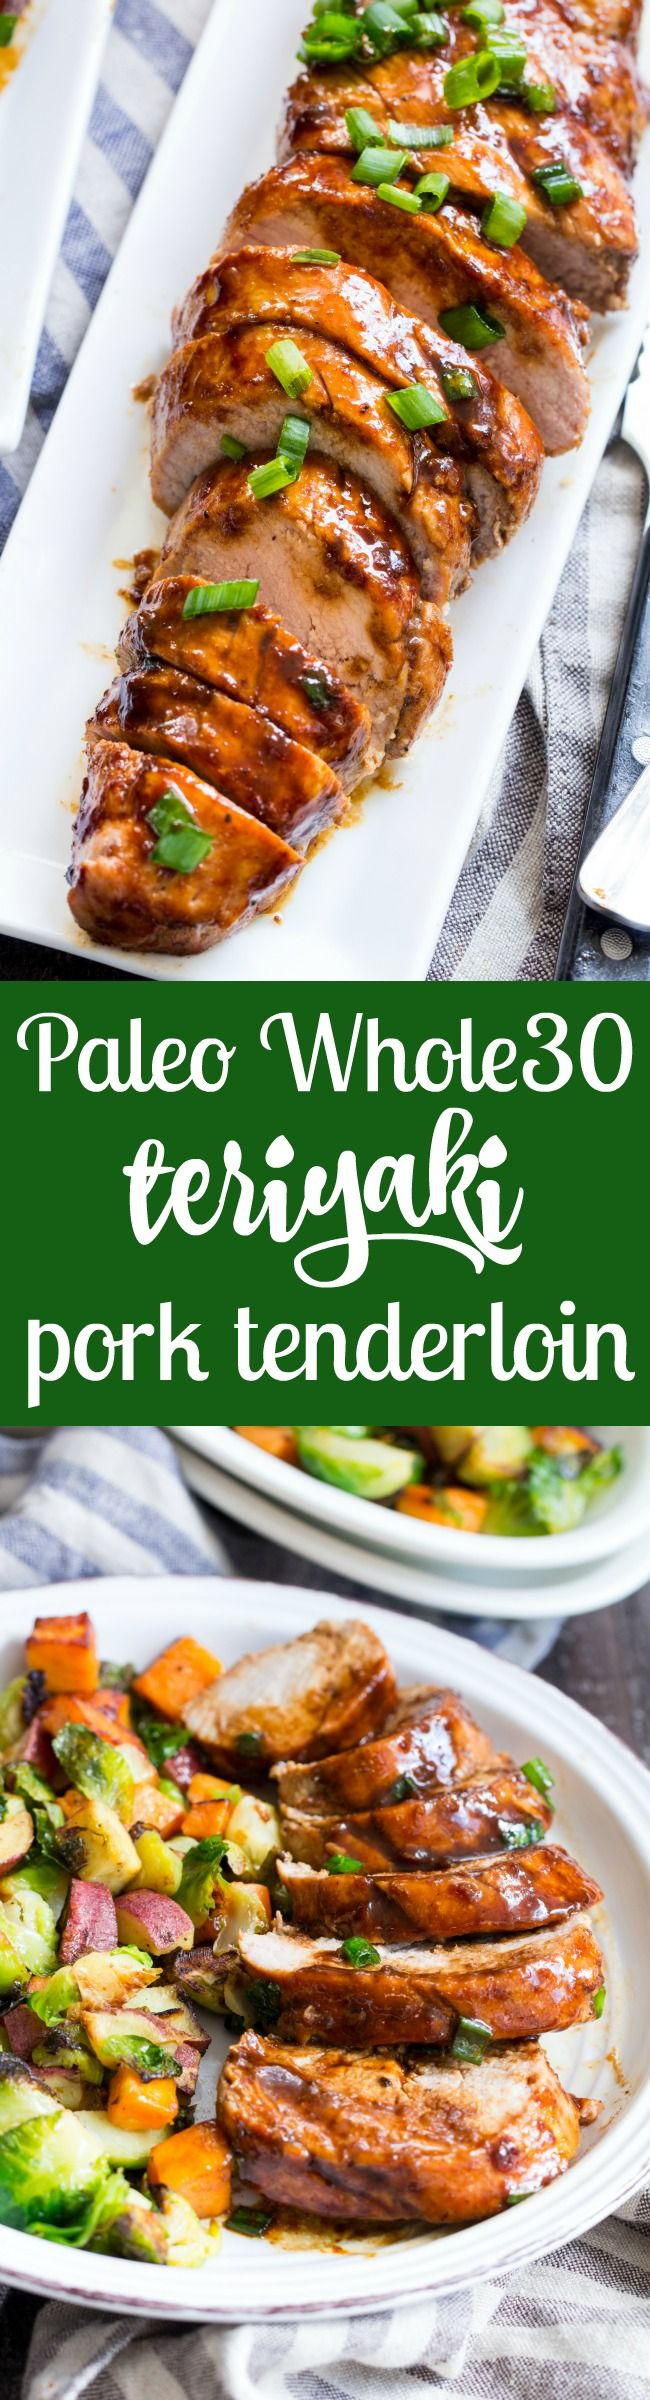 This paleo Pork Tenderloin takes just 30 minutes from start to finish and is perfect for weeknight dinners!  Cooked all in one pan with a Whole30 friendly teriyaki sauce that's kid approved and goes perfectly with cauliflower rice or your favorite veggie side dish.